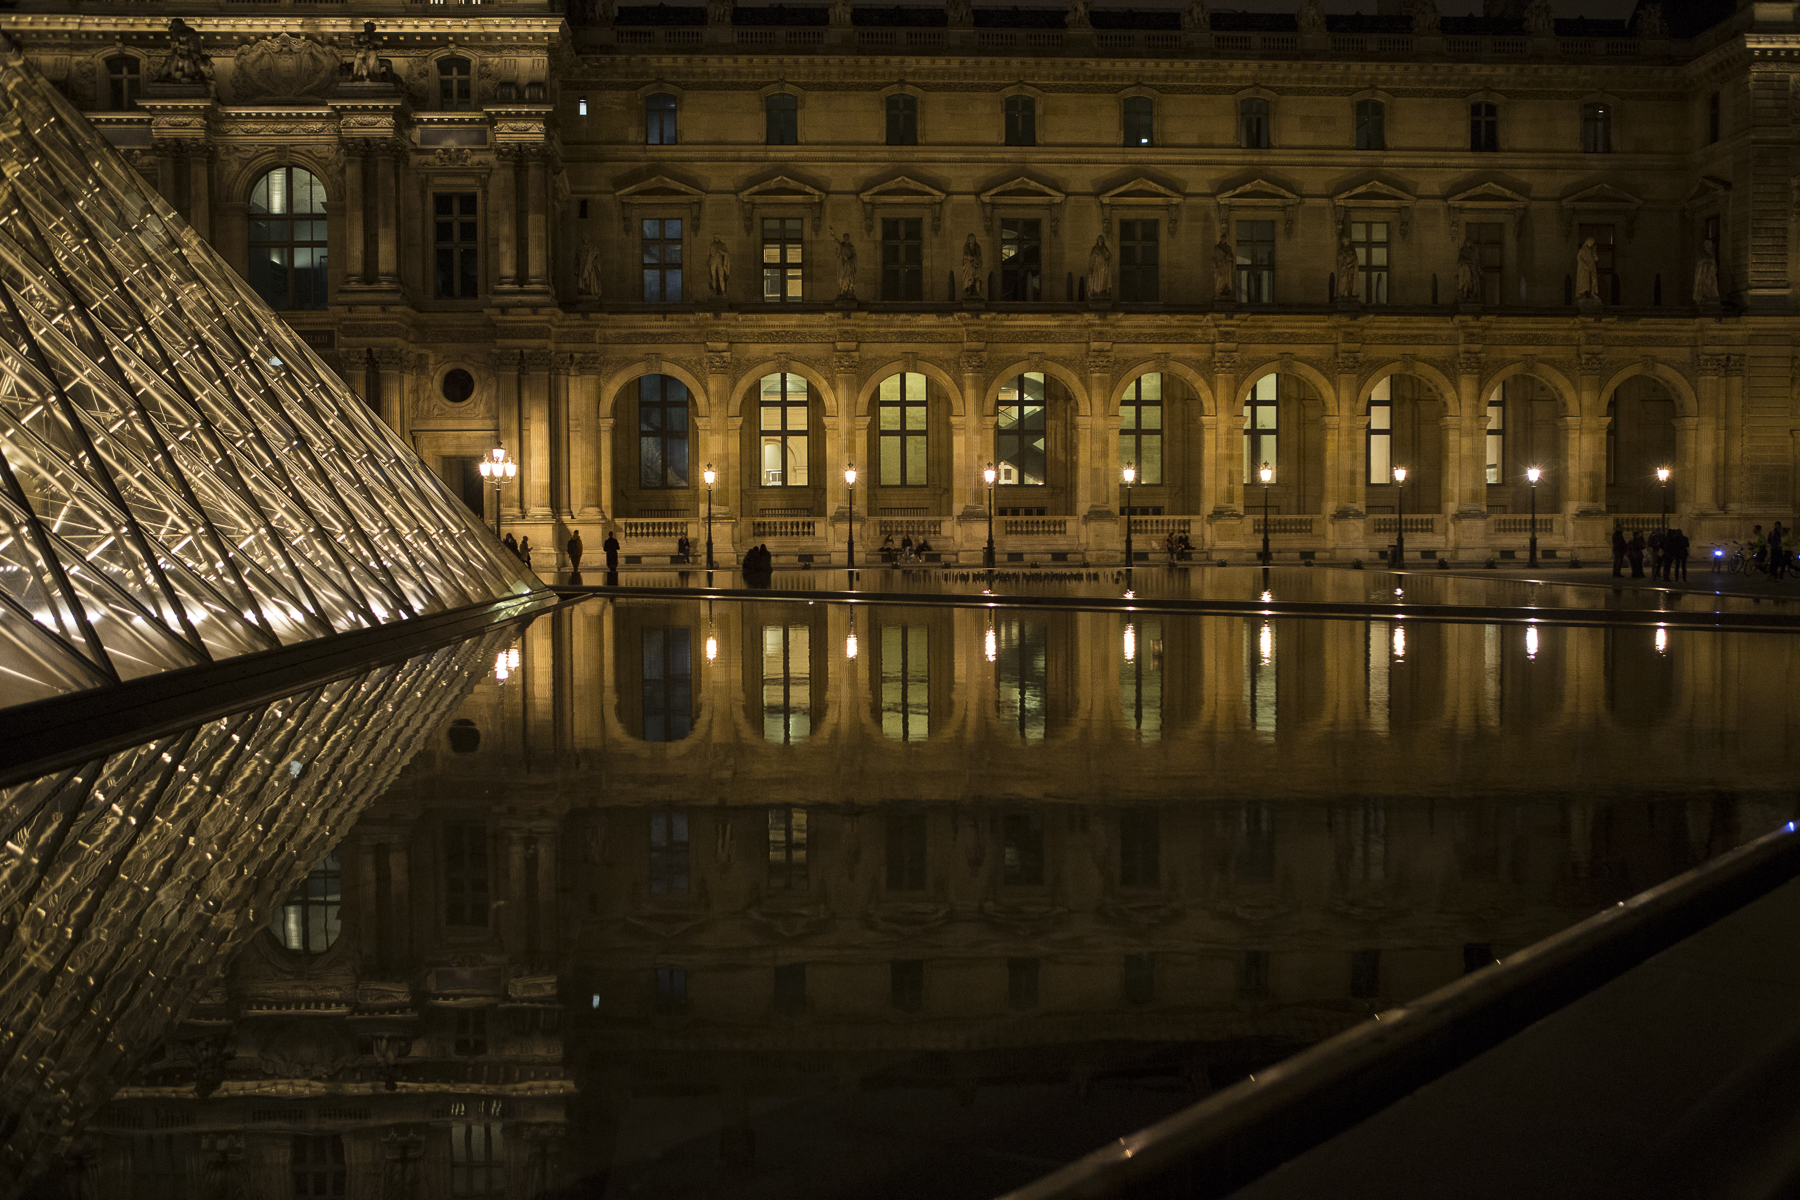 Louvre at night-6.jpg